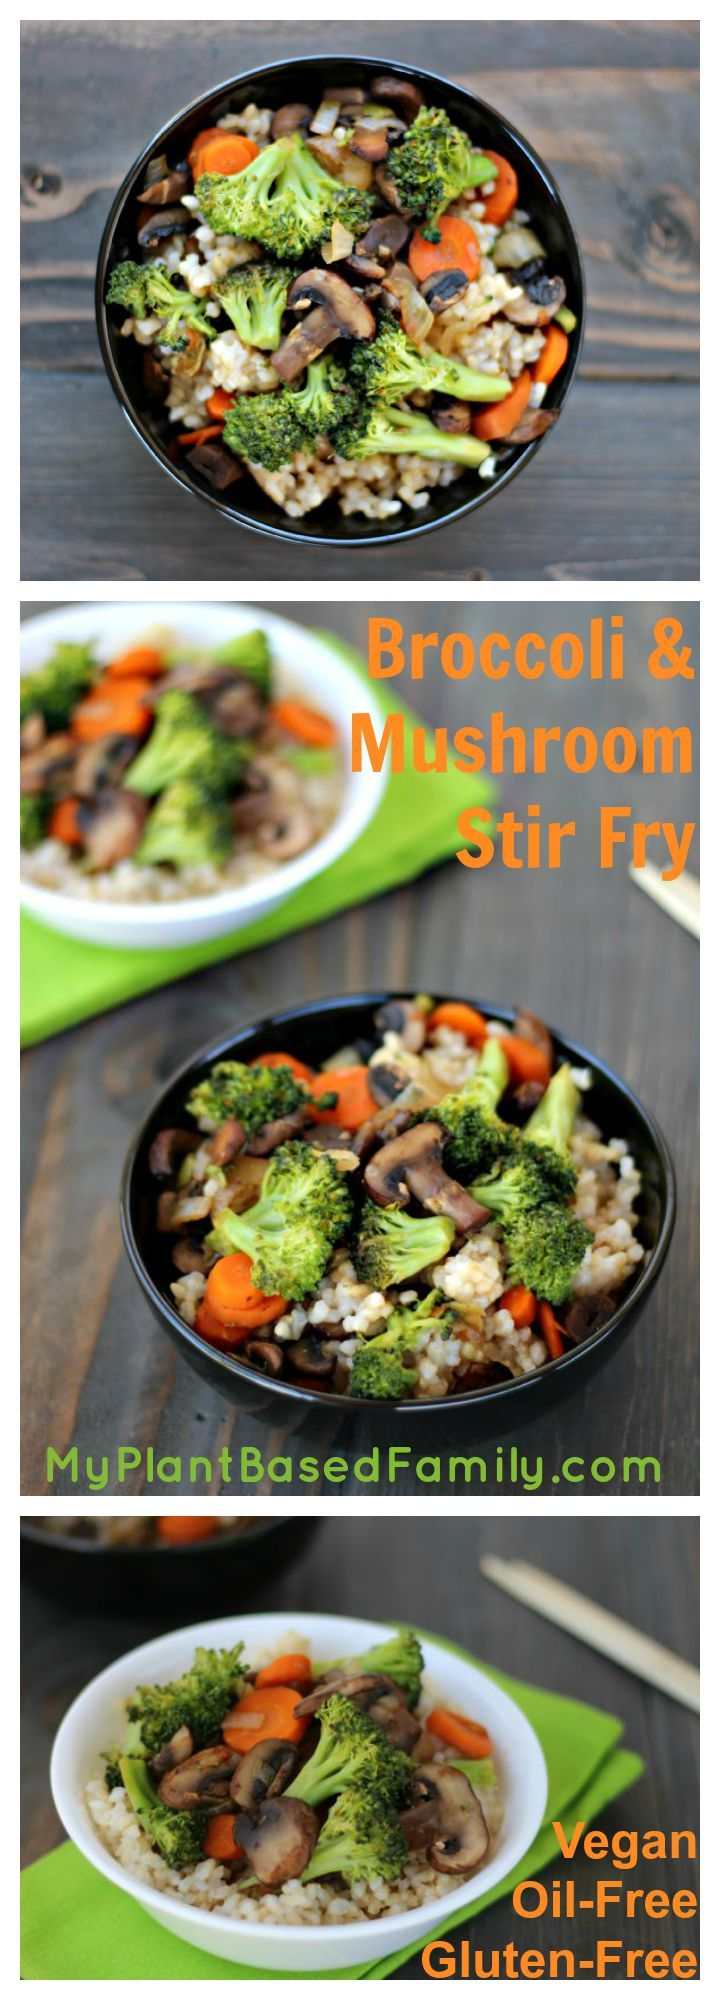 194 best my plant based family recipes images on pinterest broccoli mushroom stir fry is a quick and easy meal on busy days yes forumfinder Gallery